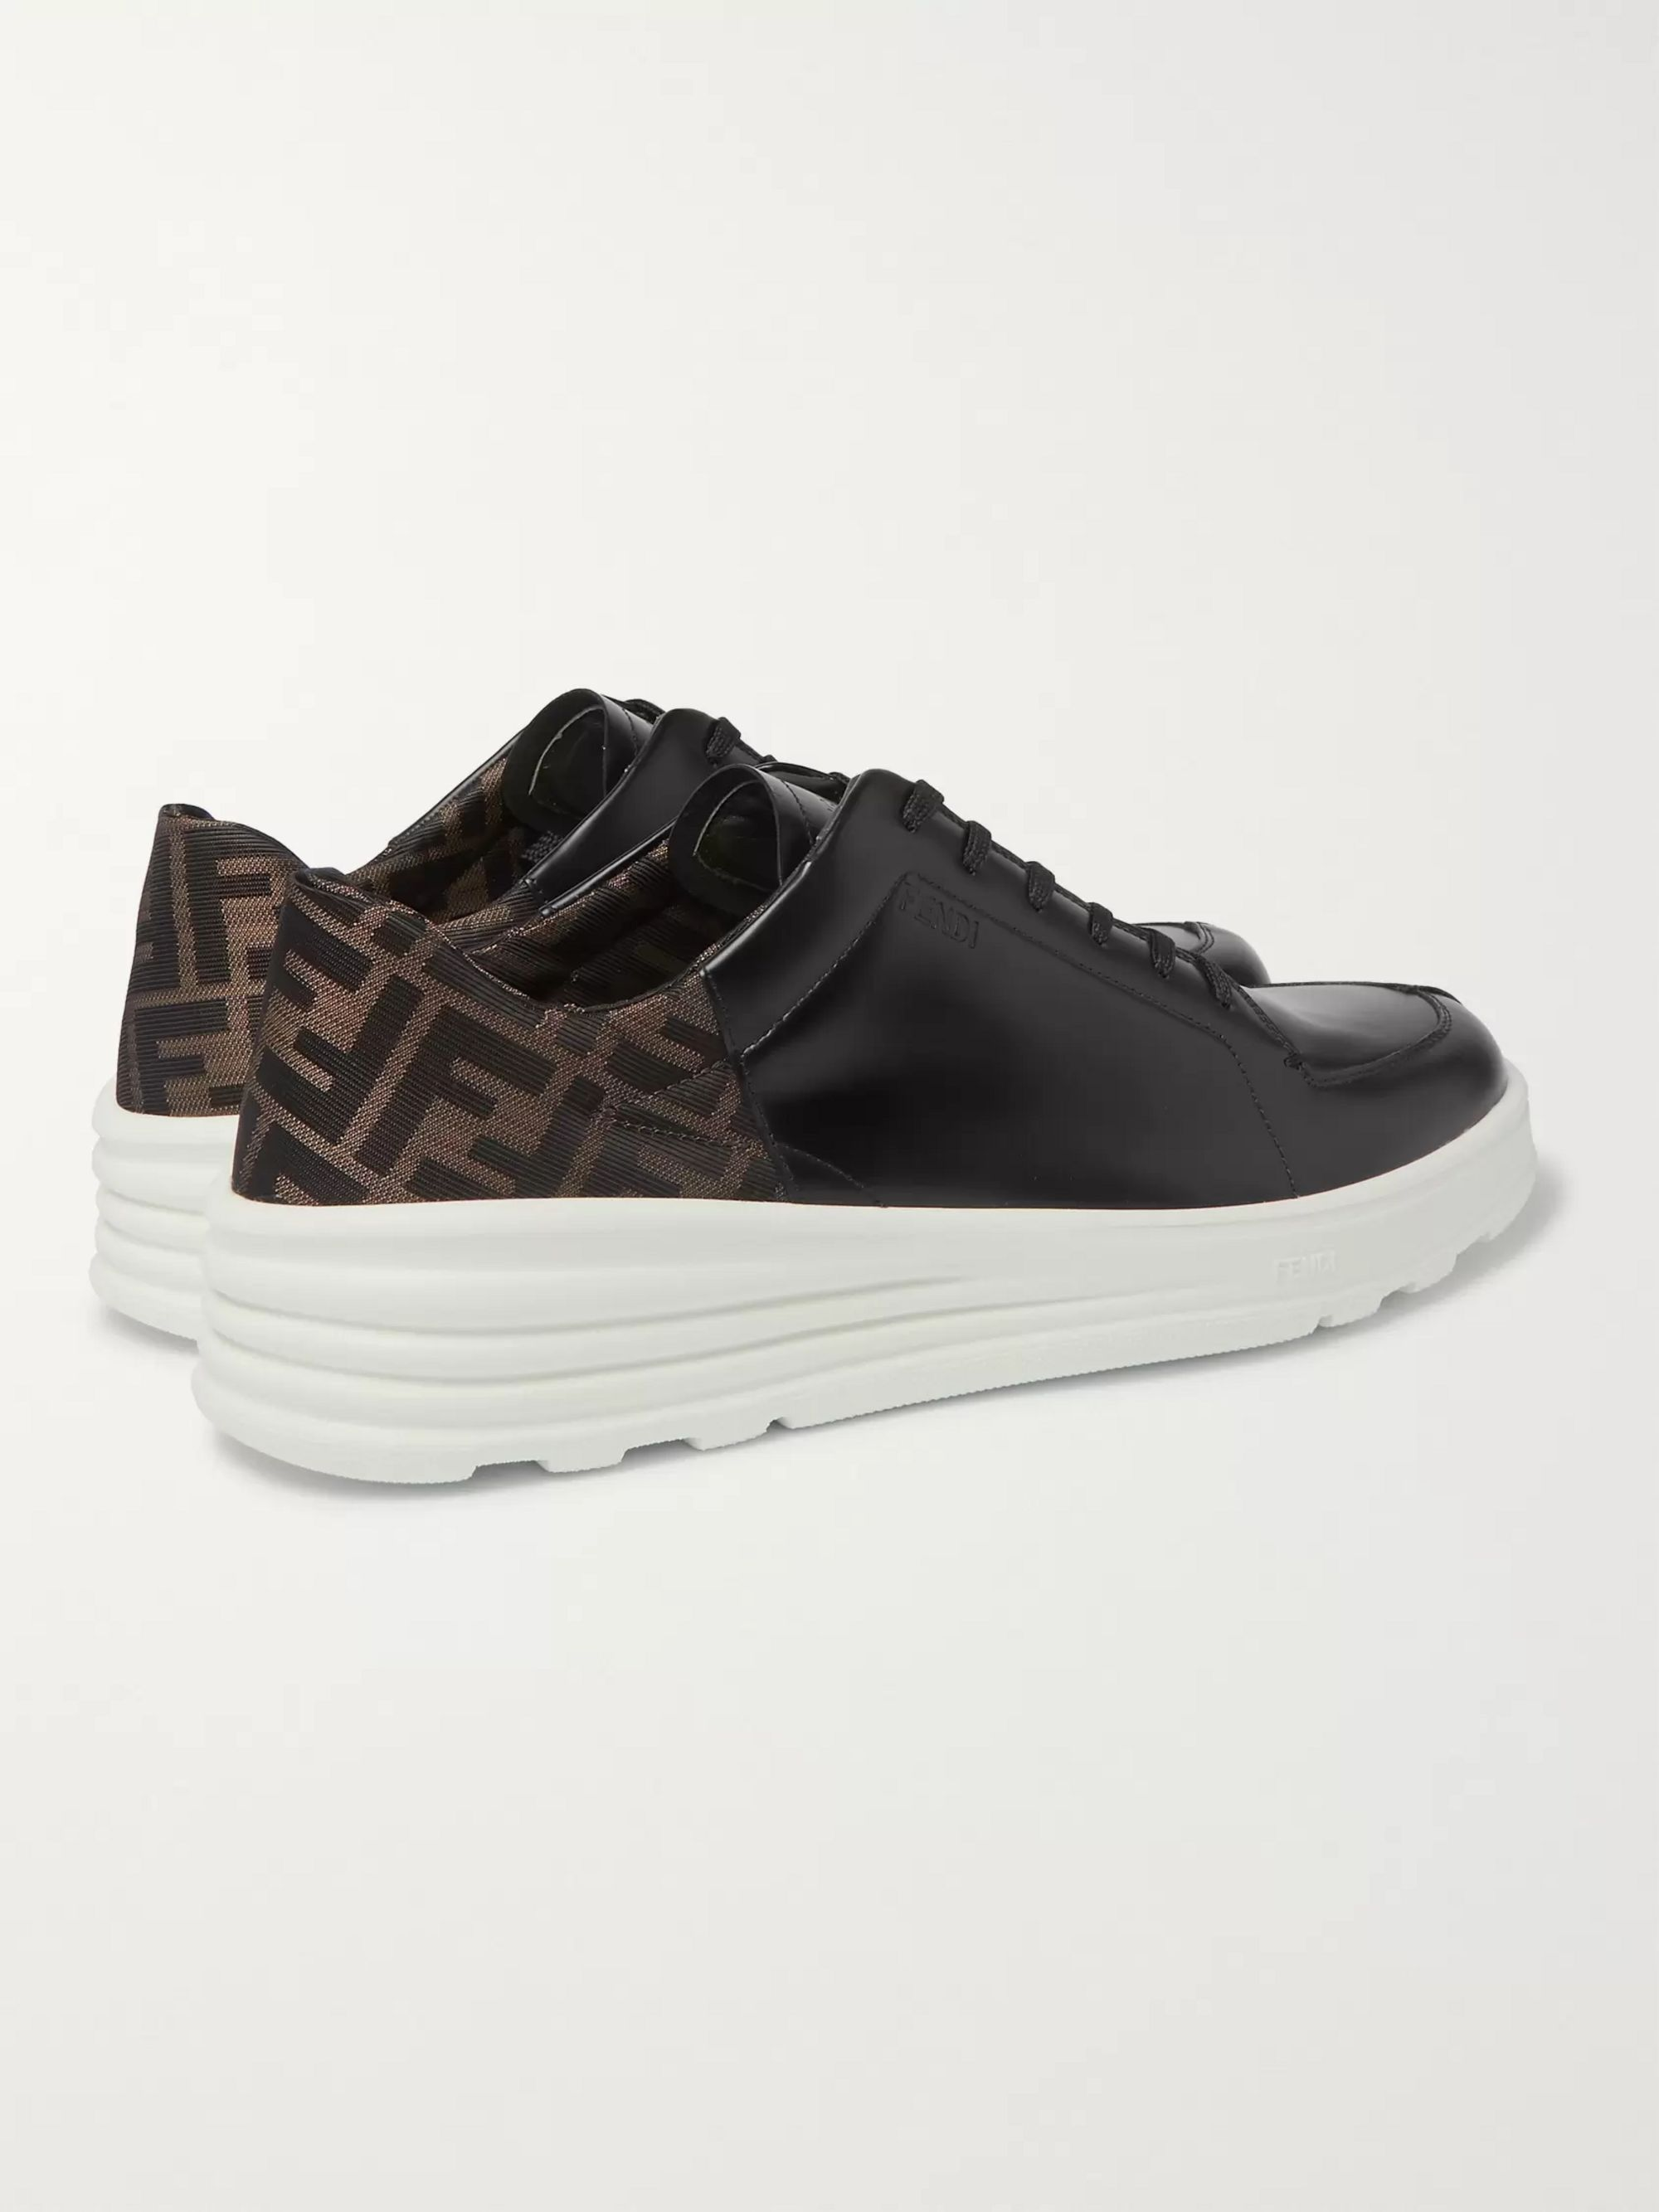 Fendi Logo-Jacquard Leather Sneakers